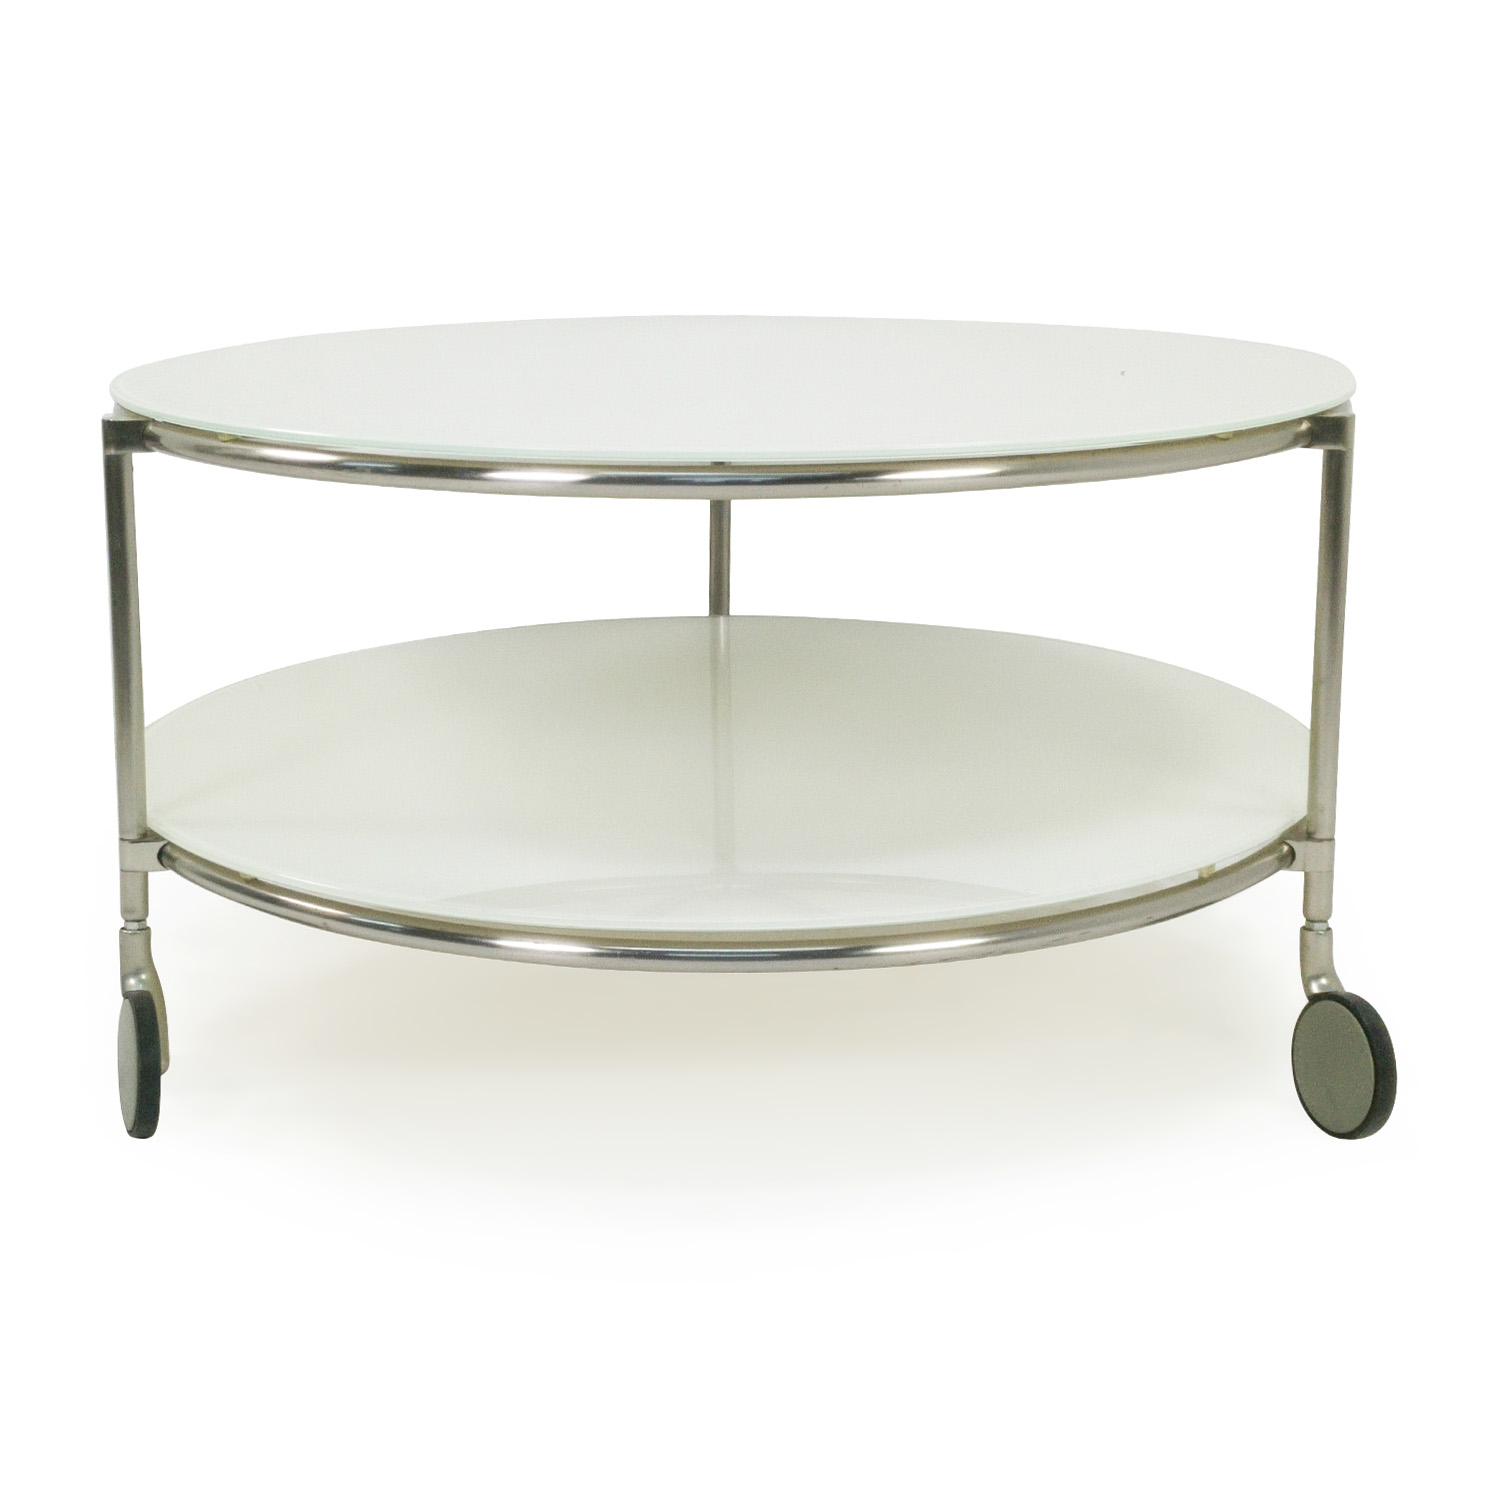 OFF IKEA String Coffee Table with Casters Tables